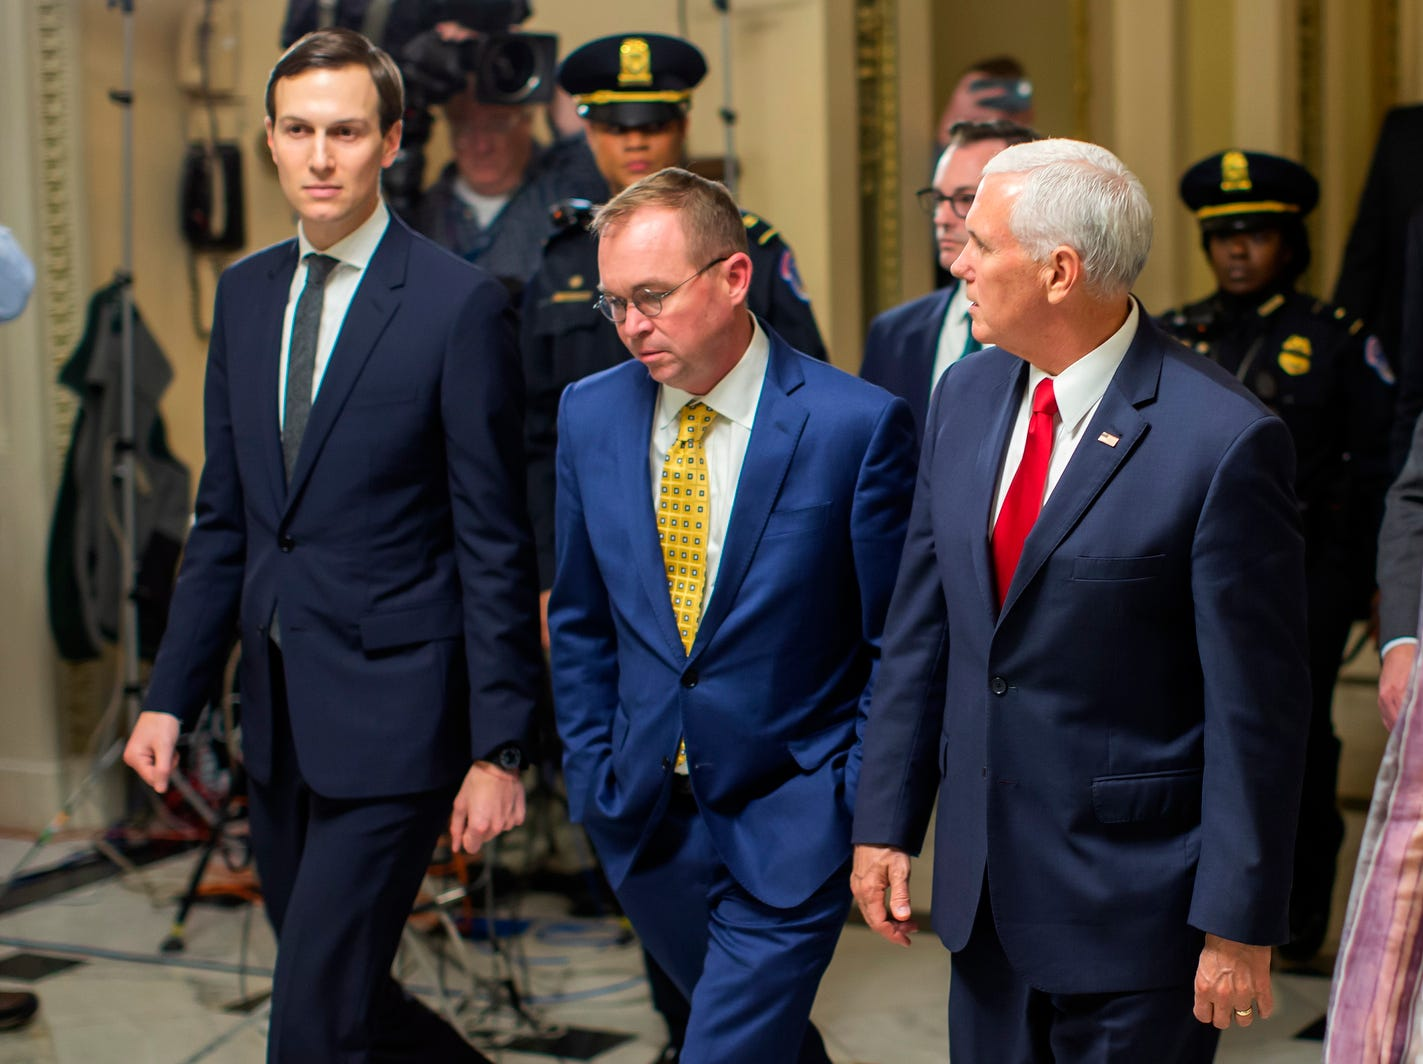 Vice President Mike Pence, right, acting White House Chief of Staff Mick Mulvaney, center, and Senior Advisor to US President Donald J. Trump, Jared Kushner, left, walk from the House of Representatives to the Senate at the US Capitol on Friday.